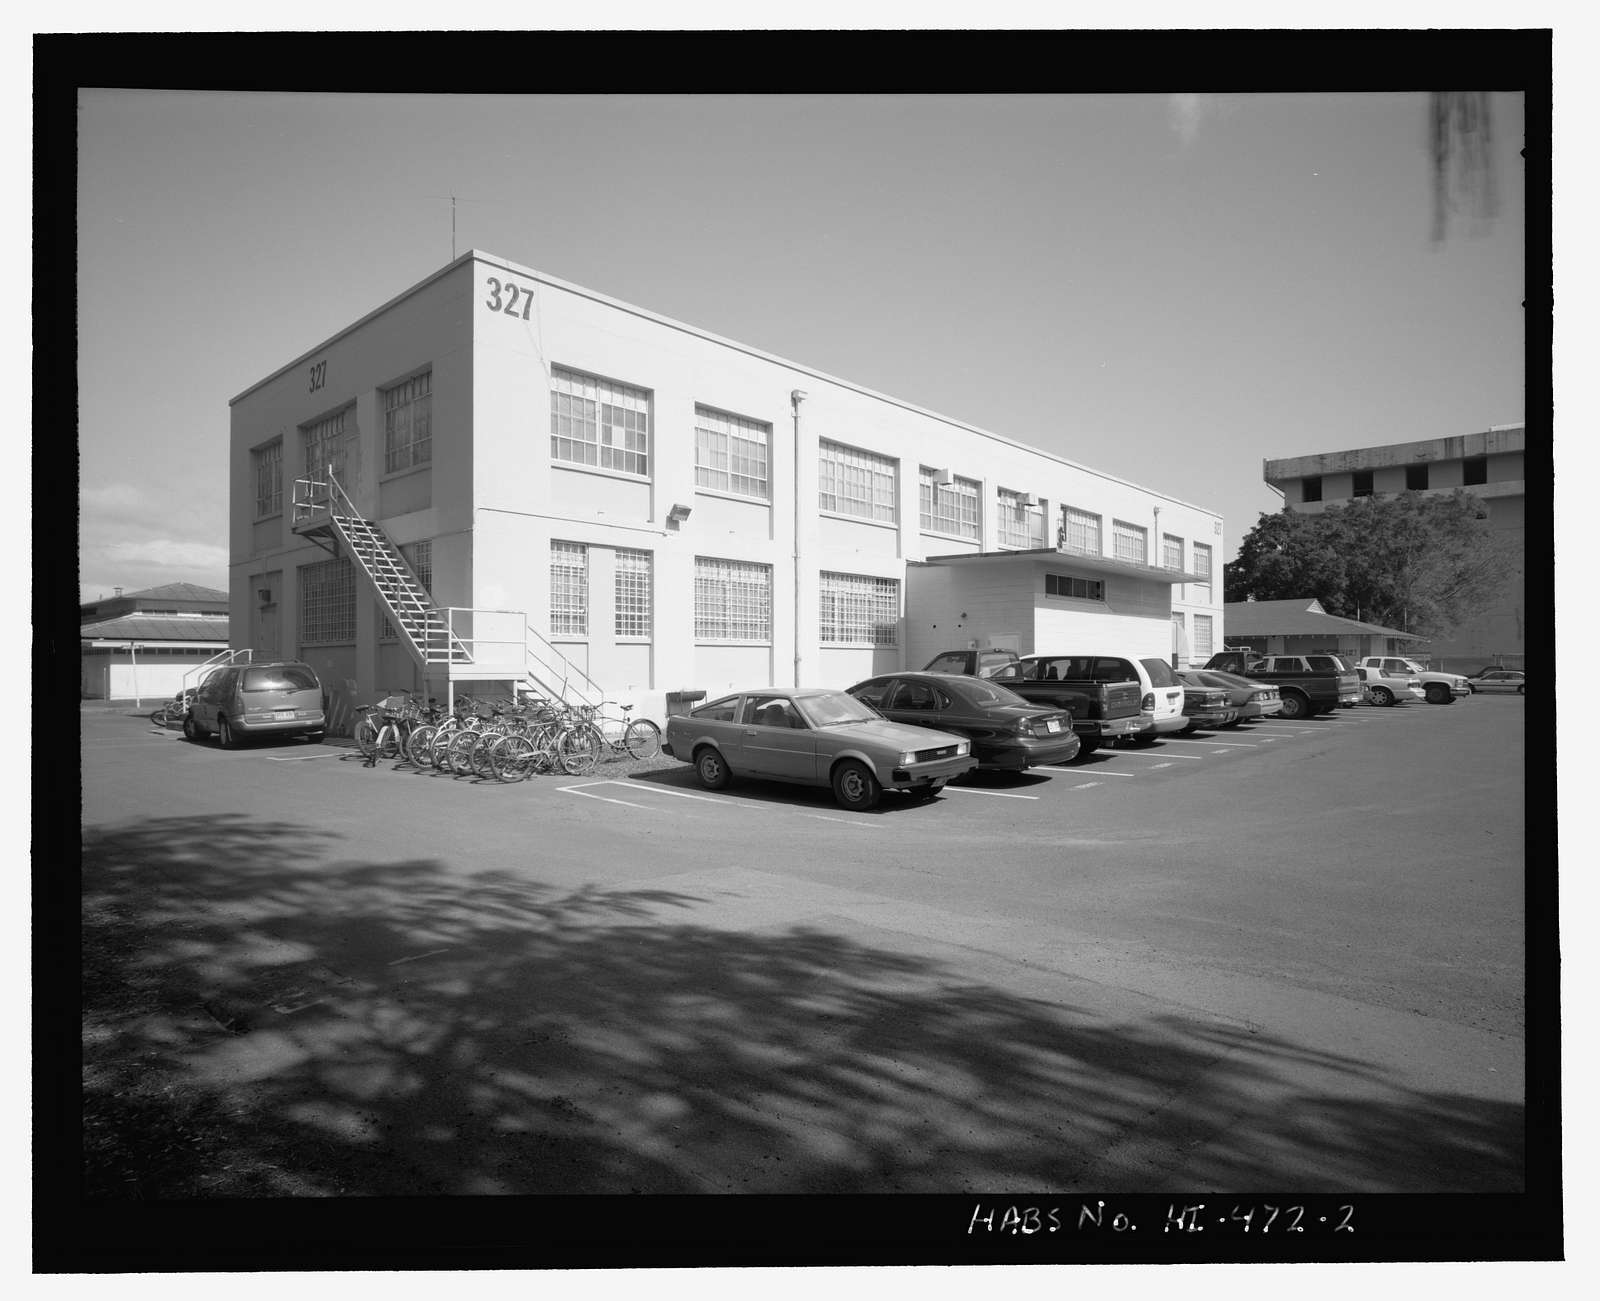 U.S. Naval Base, Pearl Harbor, Storehouse/Hospital, West end of Second Street opposite Facility No. 371A, Pearl City, Honolulu County, HI